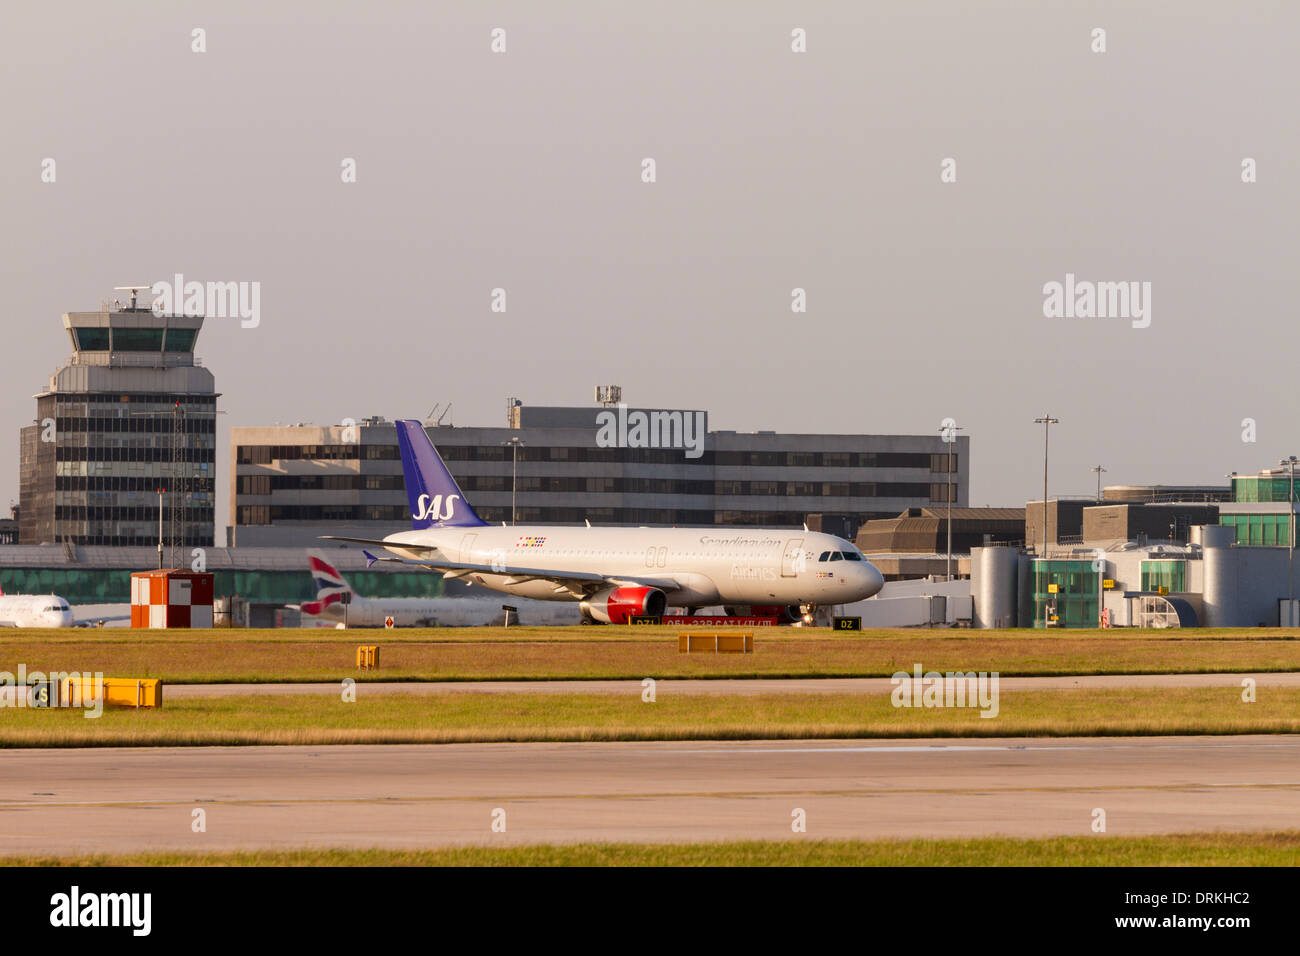 SAS airbus A320 making its way to the runway at Manchester Airport - Stock Image